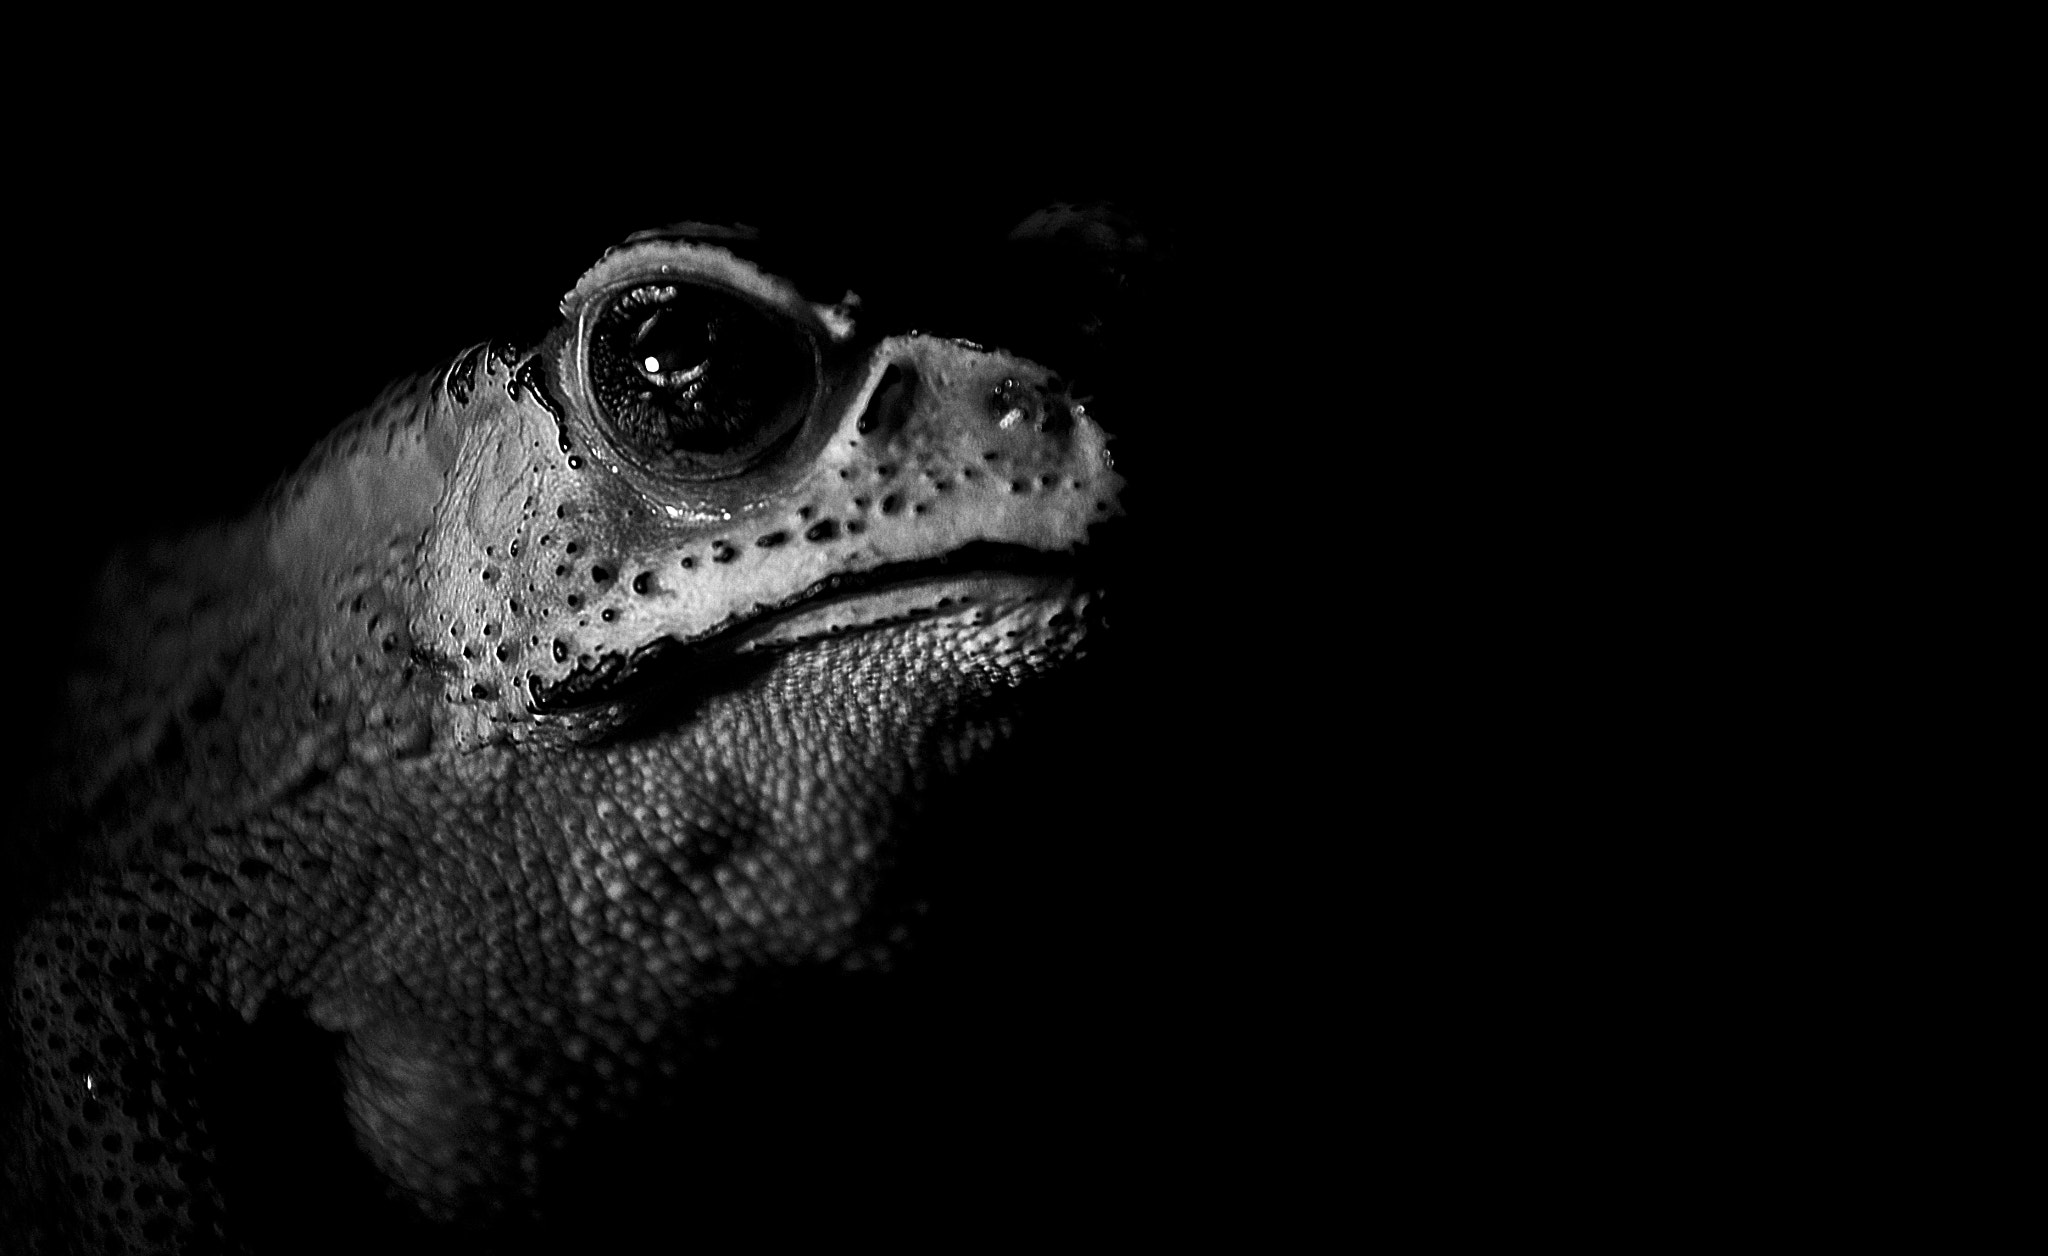 Photograph Mr. Frog by Ainul Yaqin on 500px